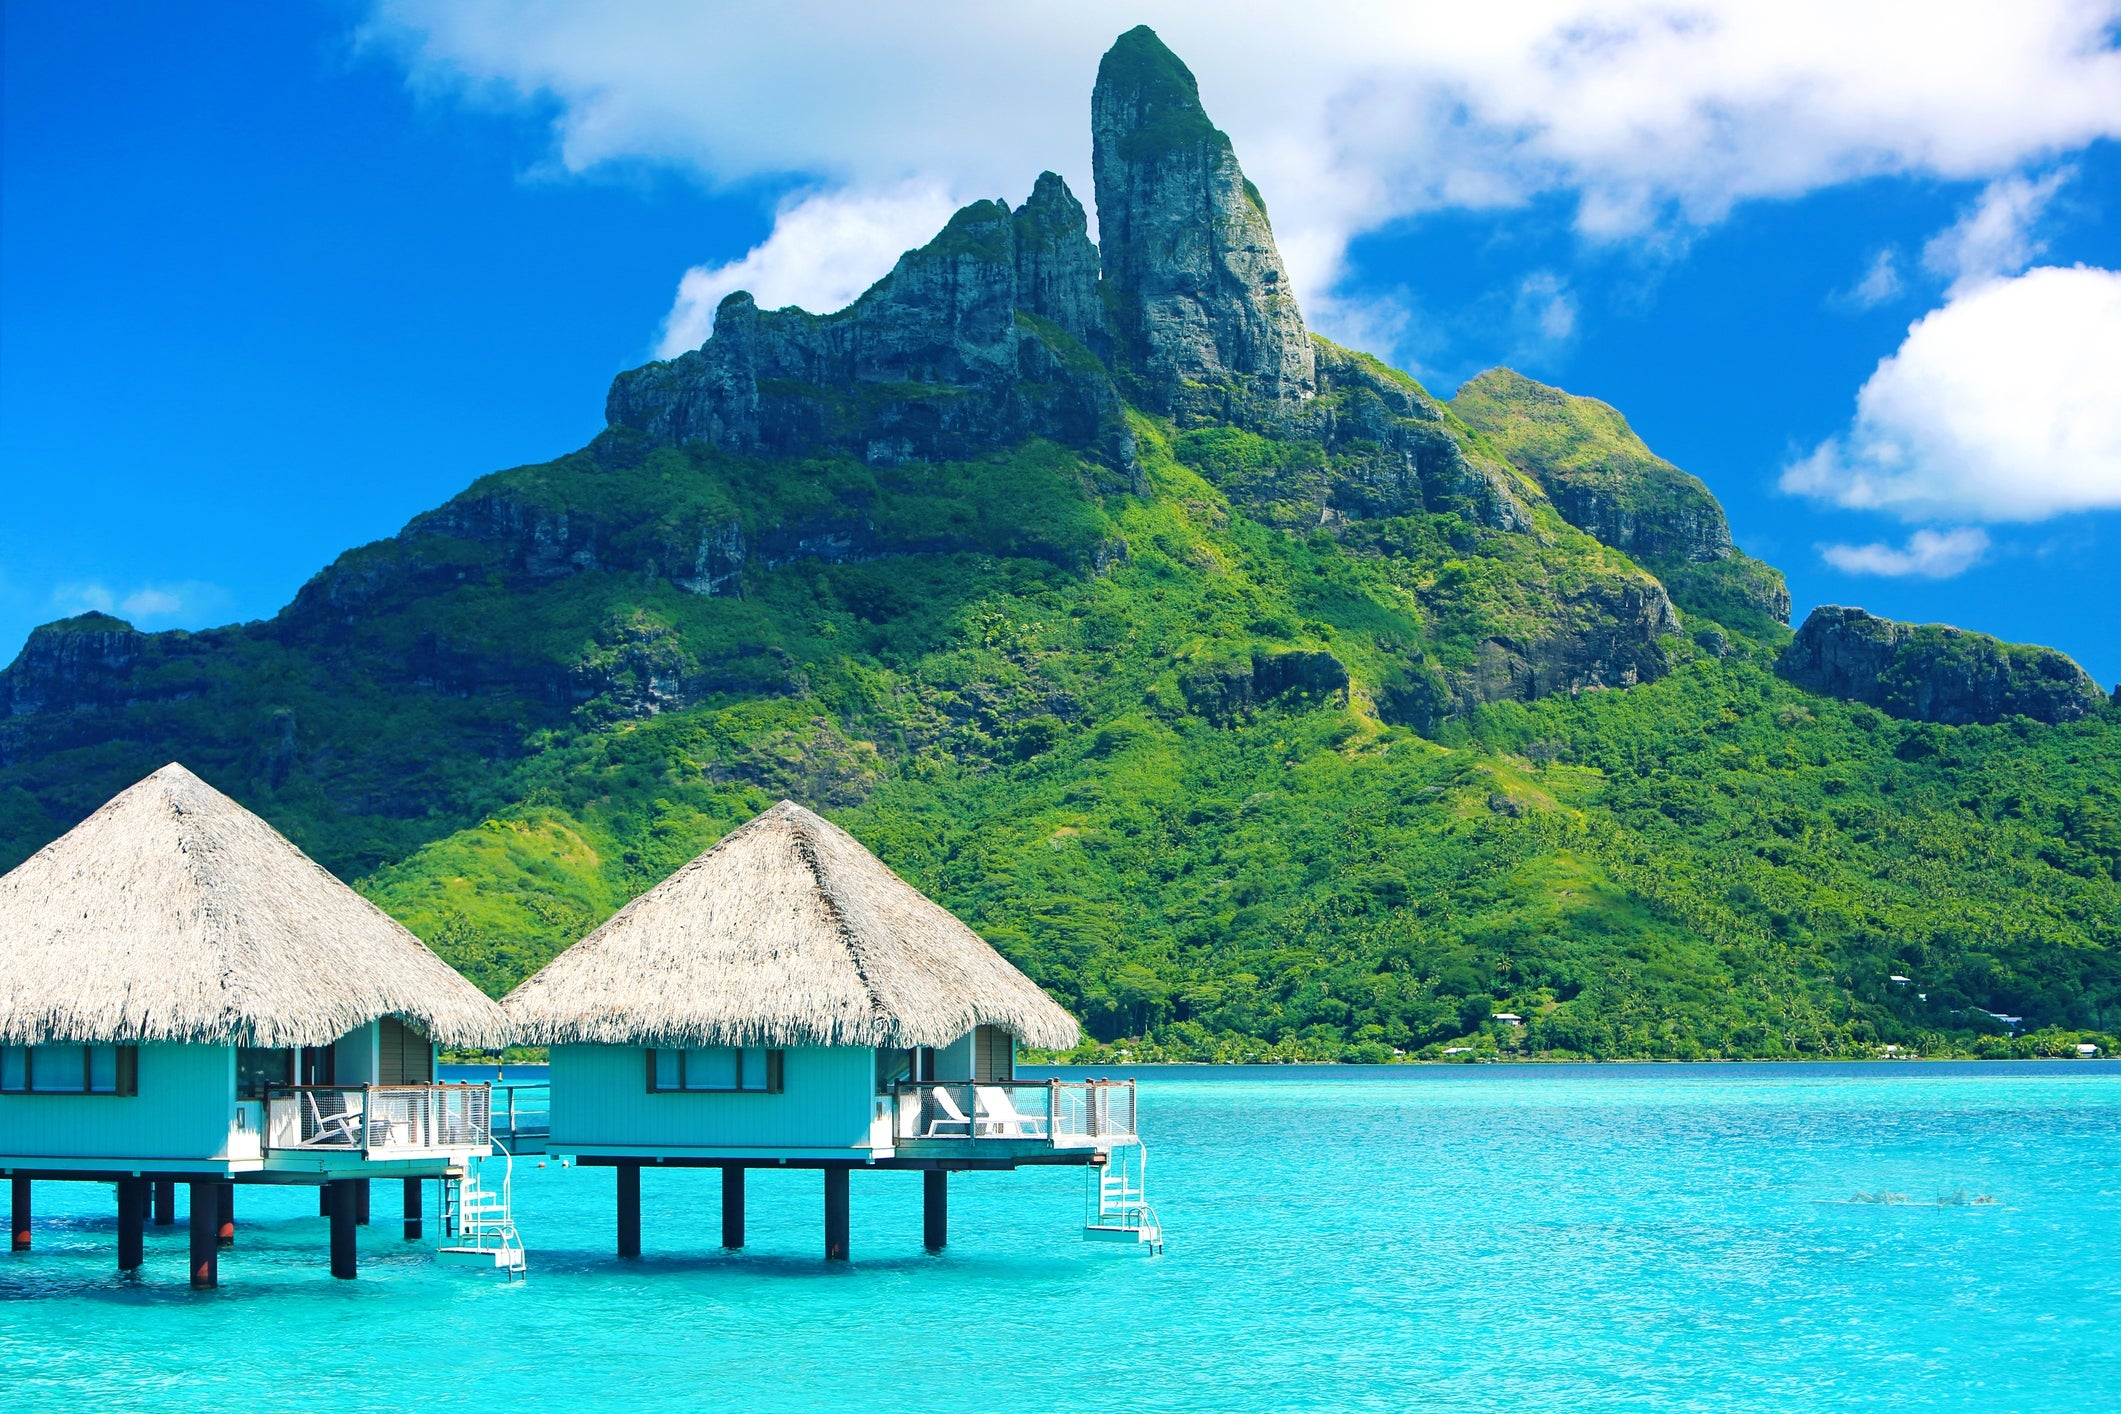 The islands of Tahiti: The birthplace of the overwater bungalow ups its ecotourism